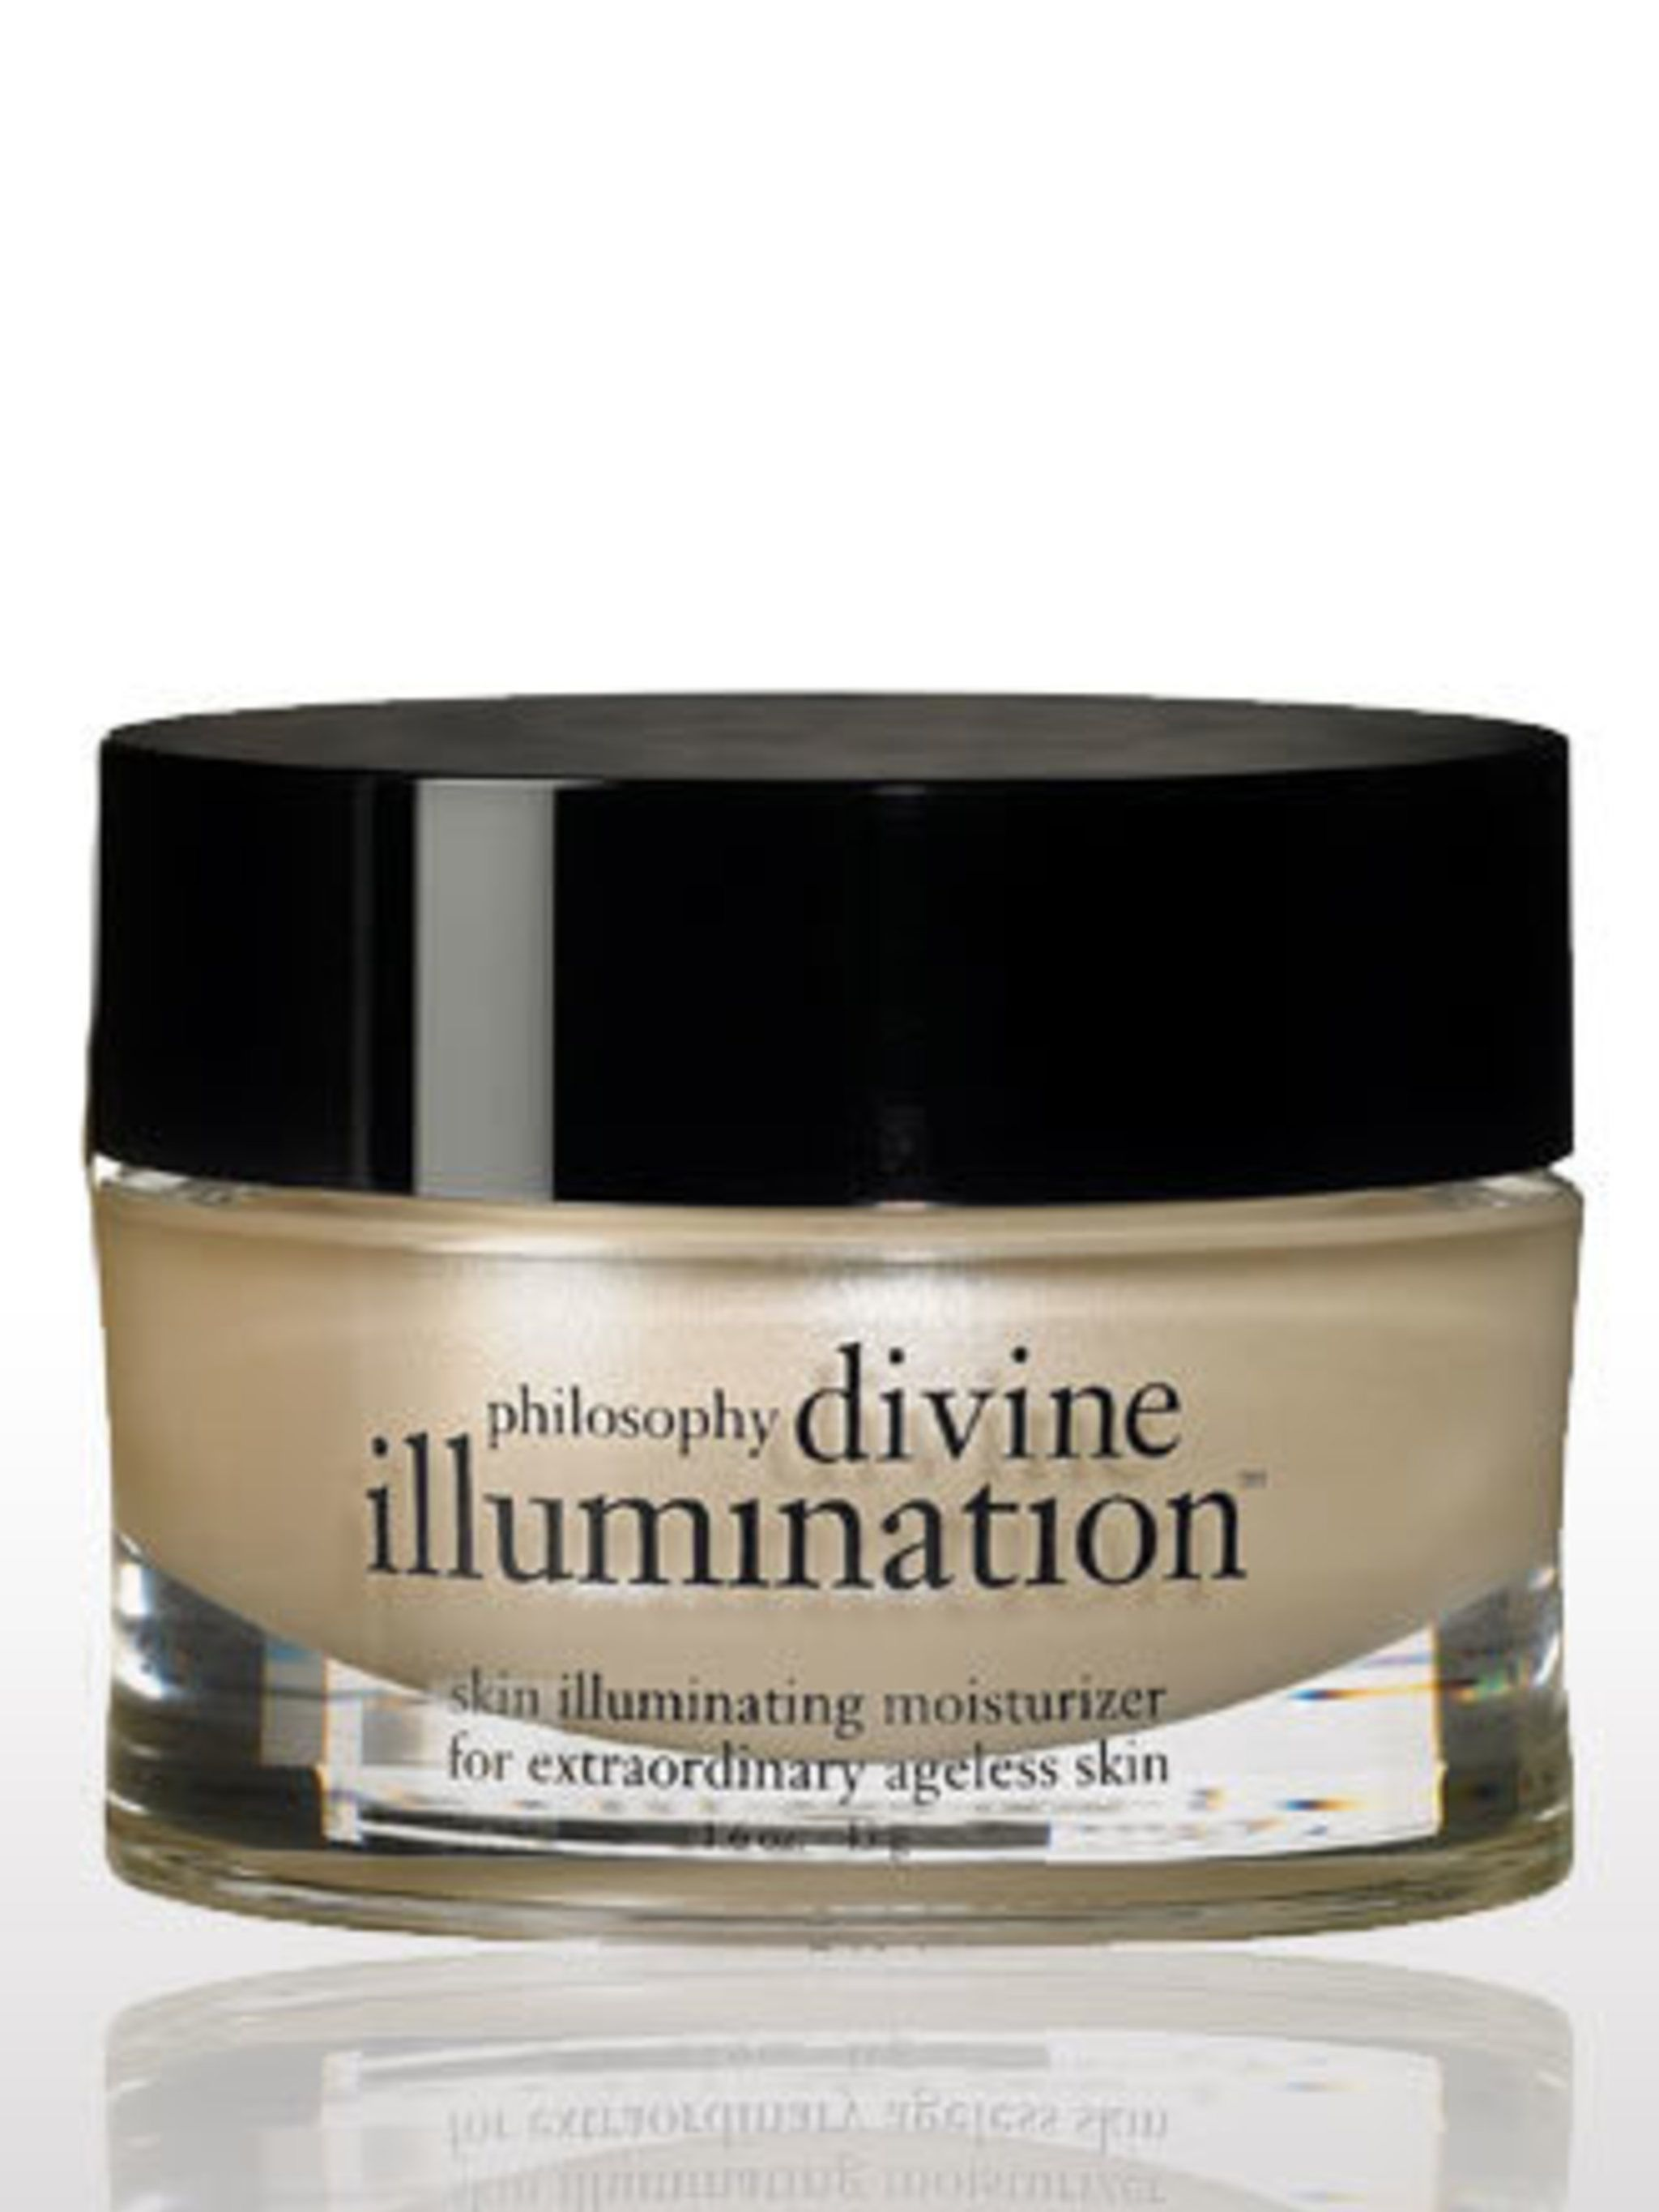 """<p>Divine Illumination, £68 by Philosophy exclusive to <a href=""""http://search.qvcuk.com/QVCUK/Search.ff?query=philosophy&image.x=54&image.y=3%E2%84%91=Search&cm_re=PAGE-_-SEARCH-_-SEARCH"""">QVC</a></p><p>Like molten gold in a jar, the shimmering"""